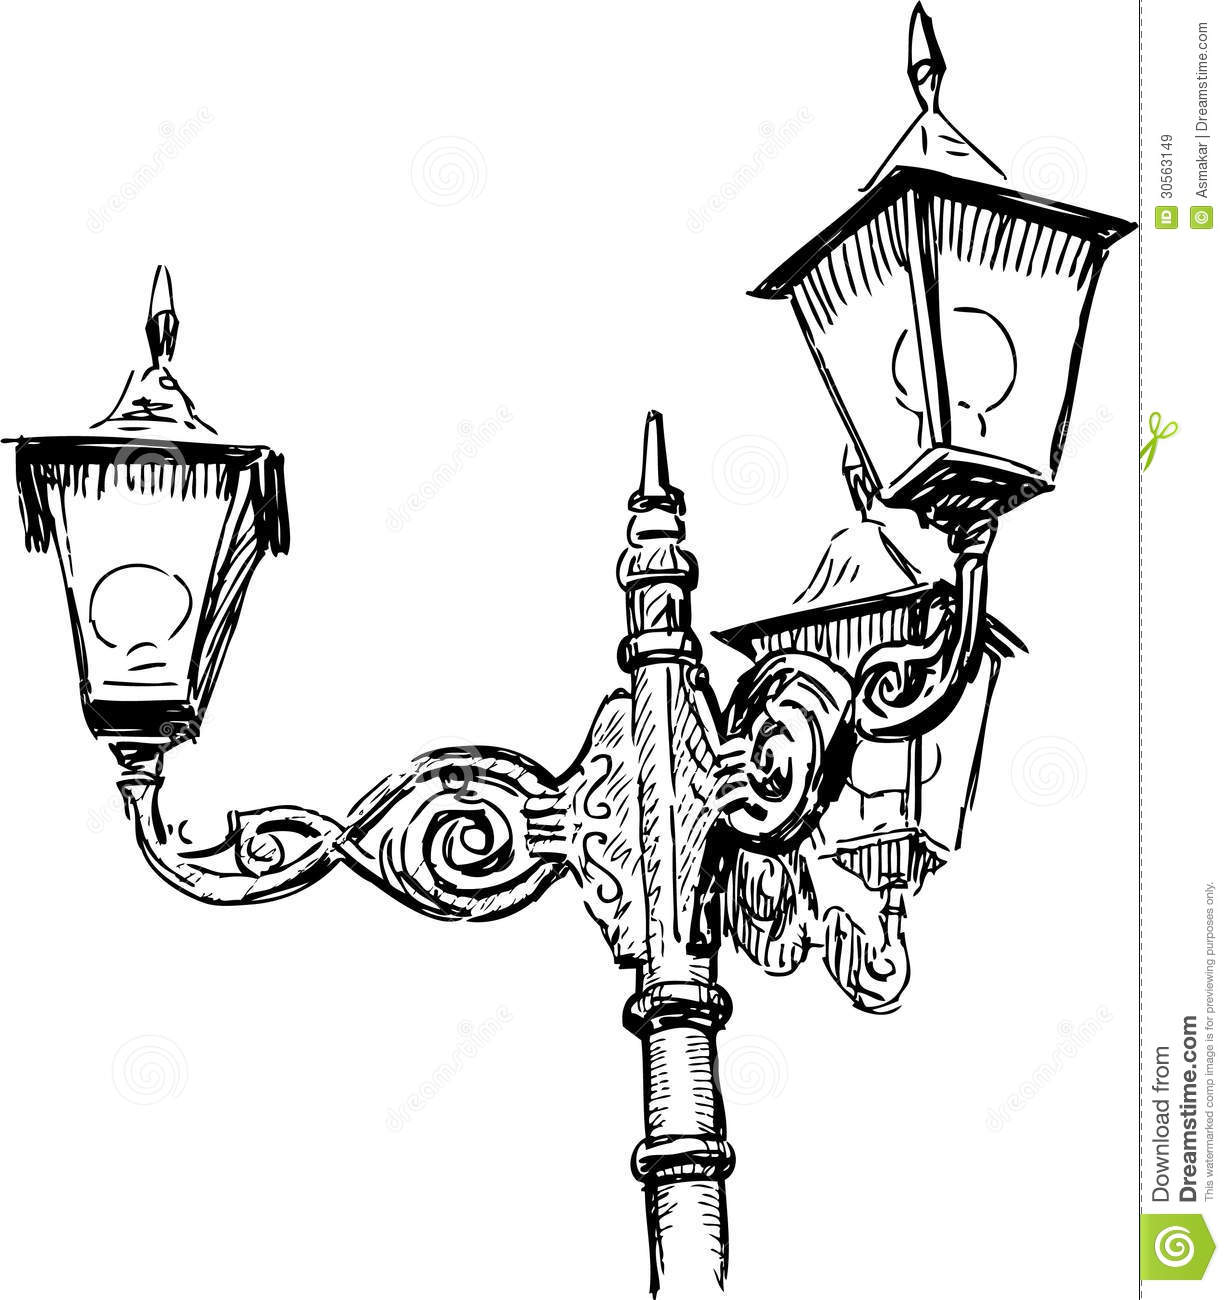 Street lamps stock image. Image of doodle, triple, drawn - 30563149 for Street Lamp Drawing  53kxo